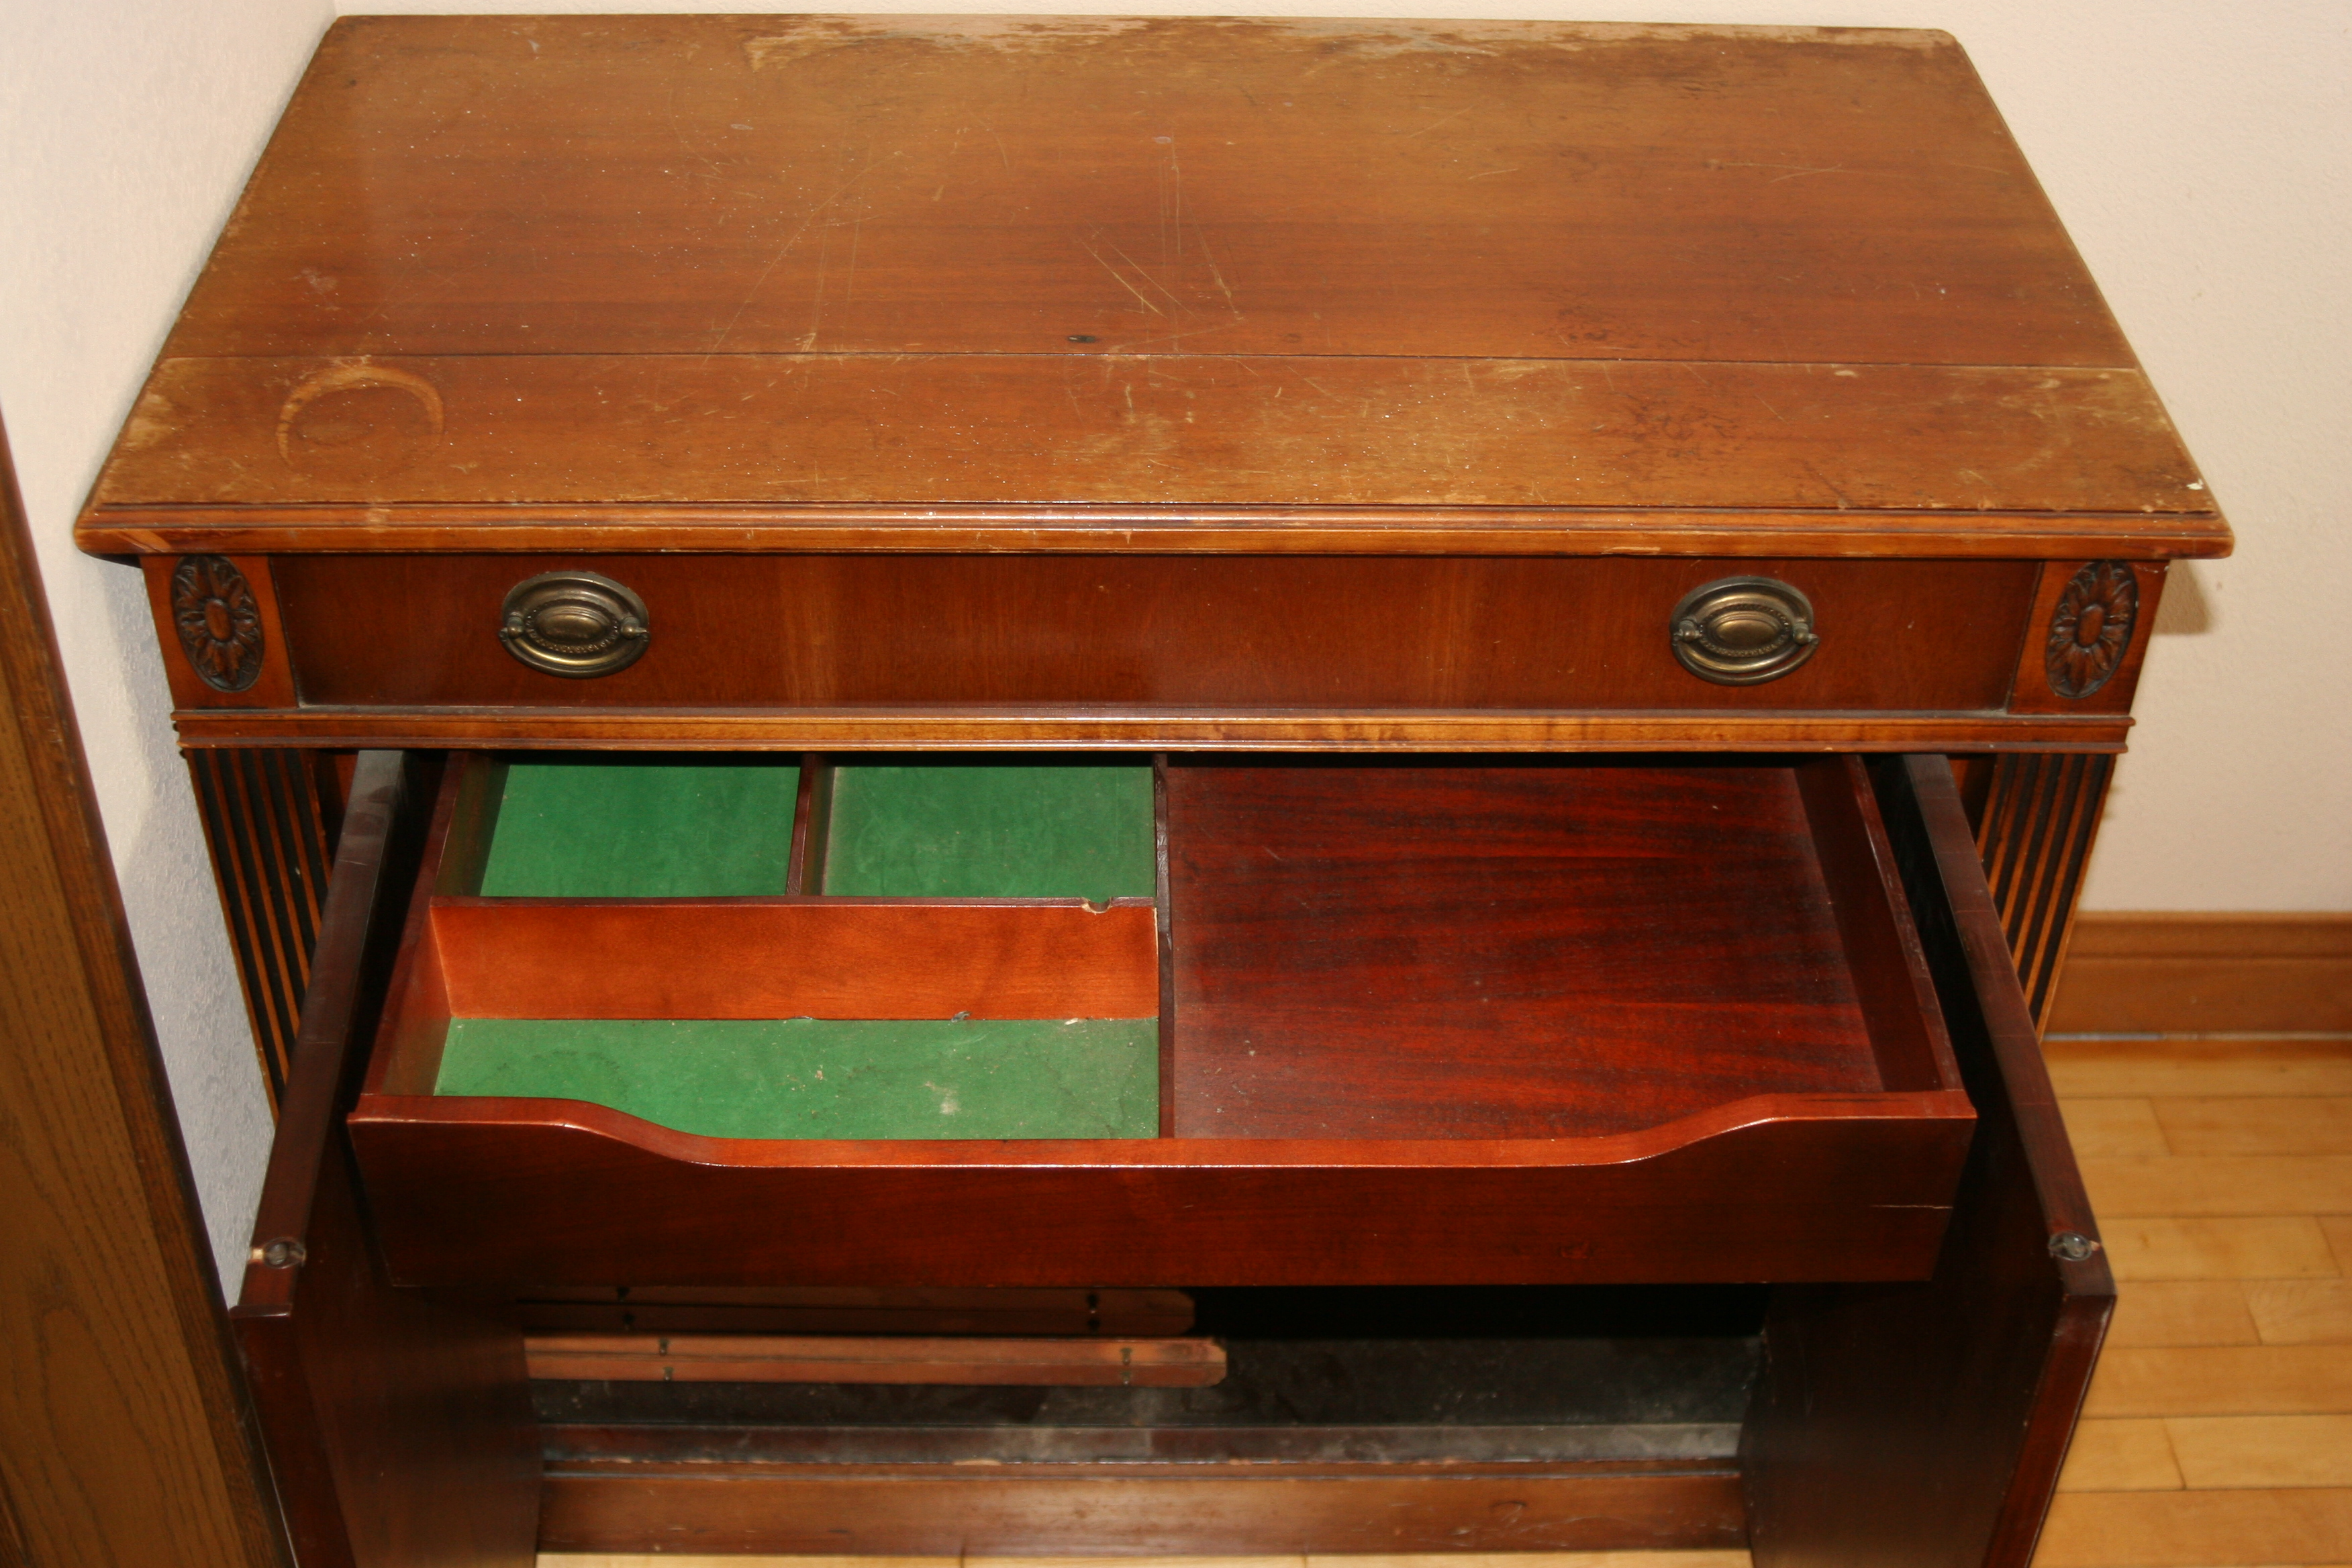 Expand-o-matic drawer open